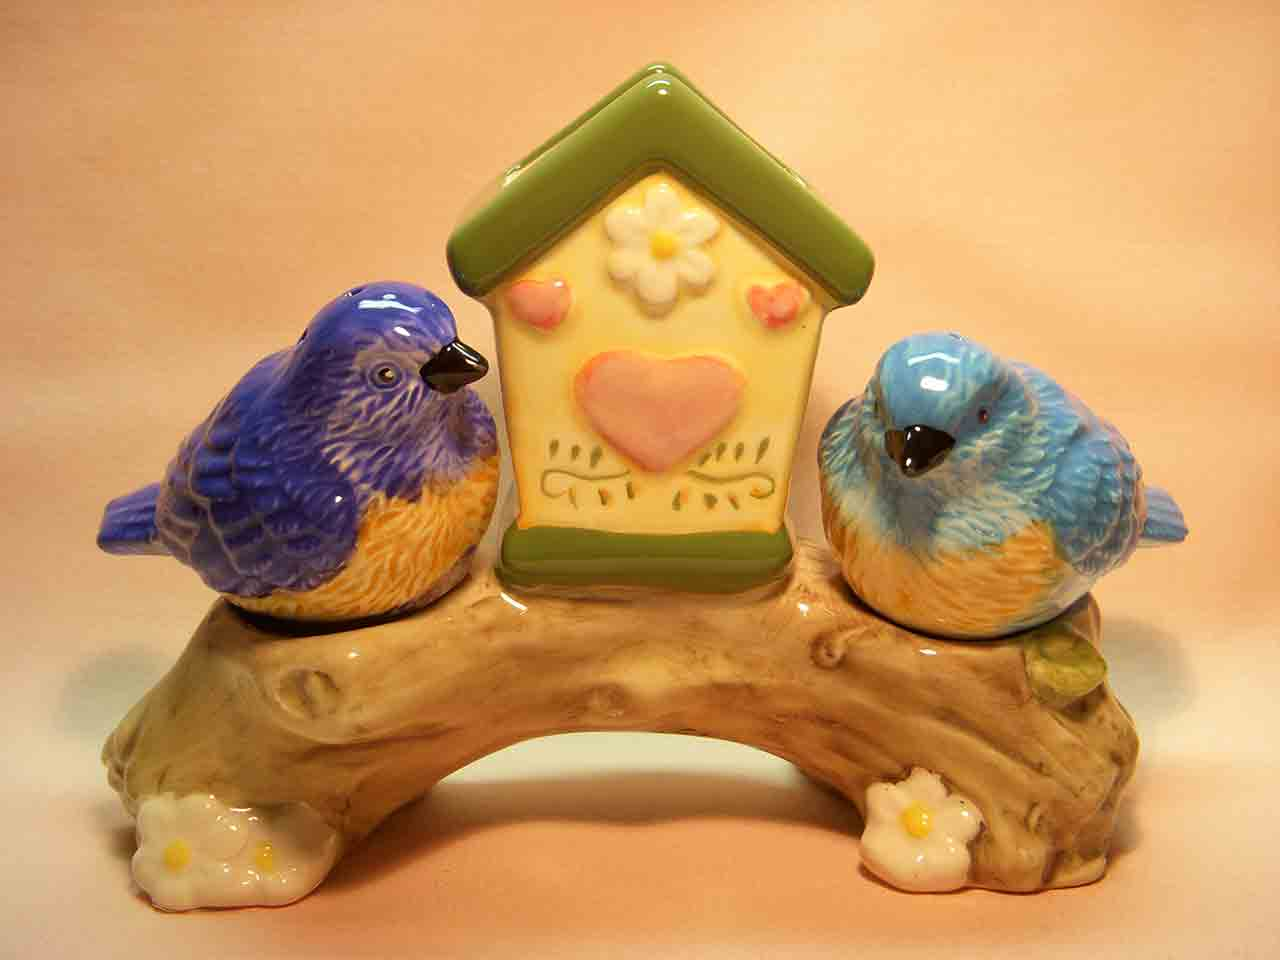 Birds with birdhouse salt and pepper shakers